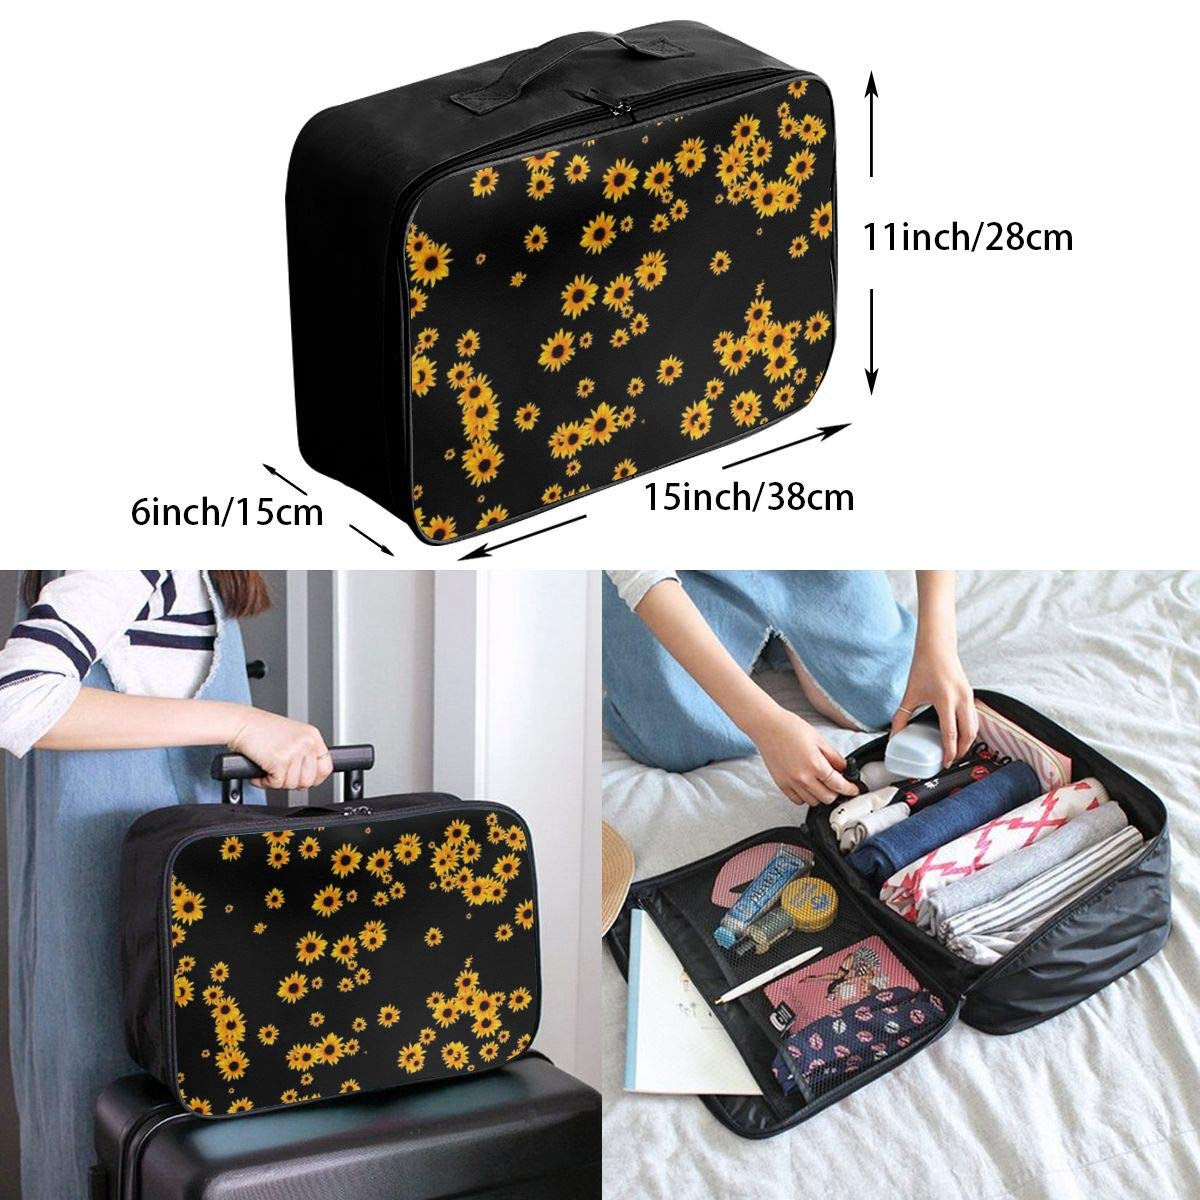 Sunflower Floral Pattern Travel Lightweight Waterproof Foldable Storage Carry Luggage Duffle Tote Bag Large Capacity In Trolley Handle Bags 6x11x15 Inch